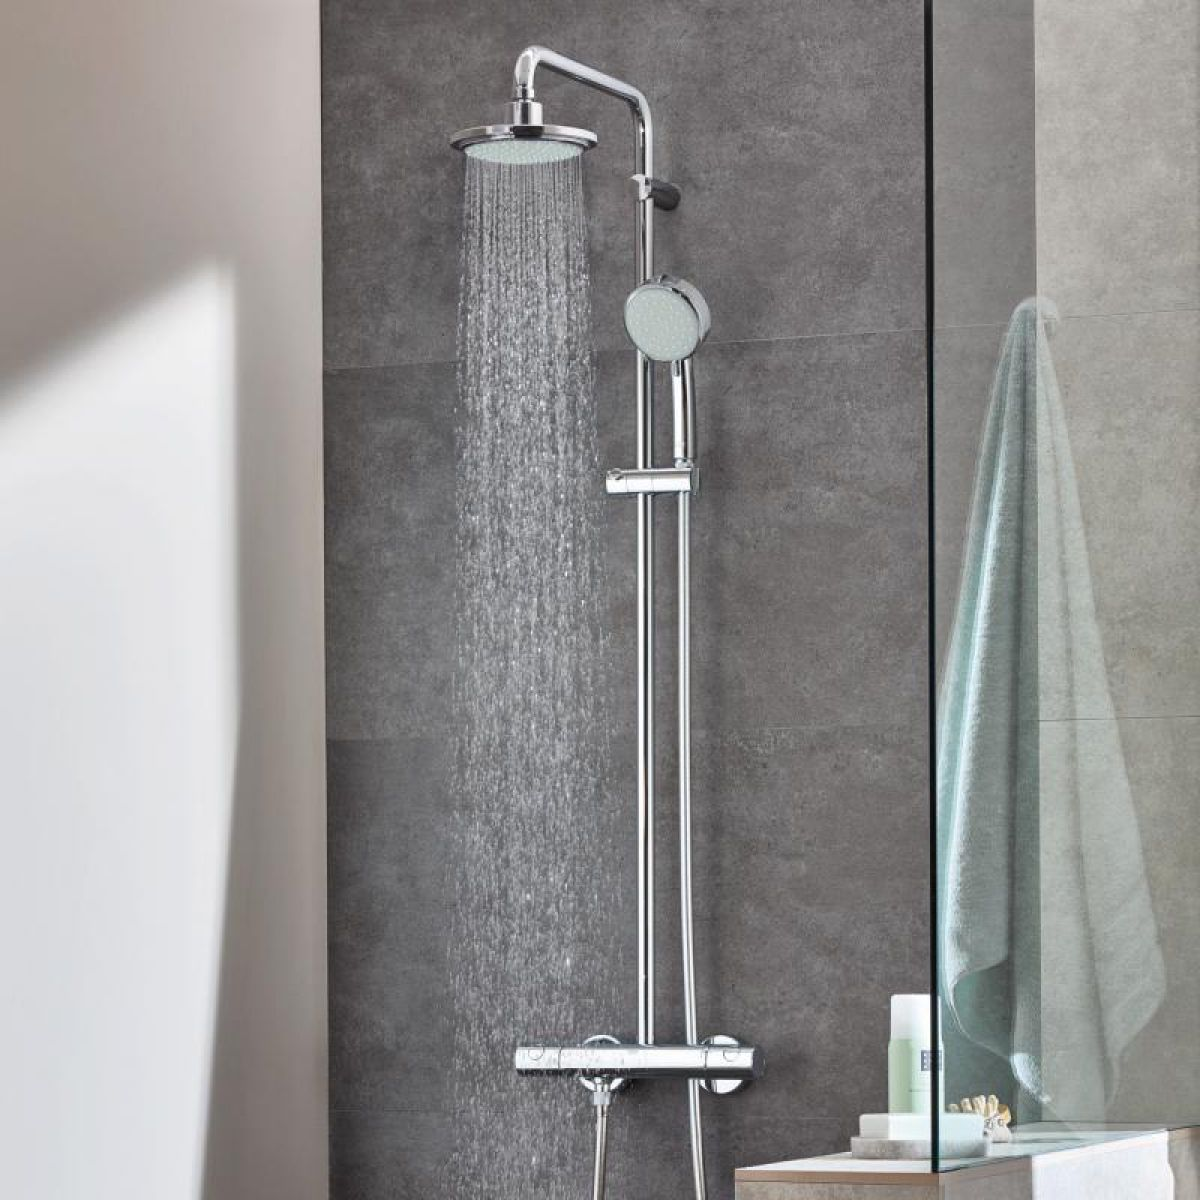 grohe tempesta cosmopolitan 160 shower system uk bathrooms. Black Bedroom Furniture Sets. Home Design Ideas